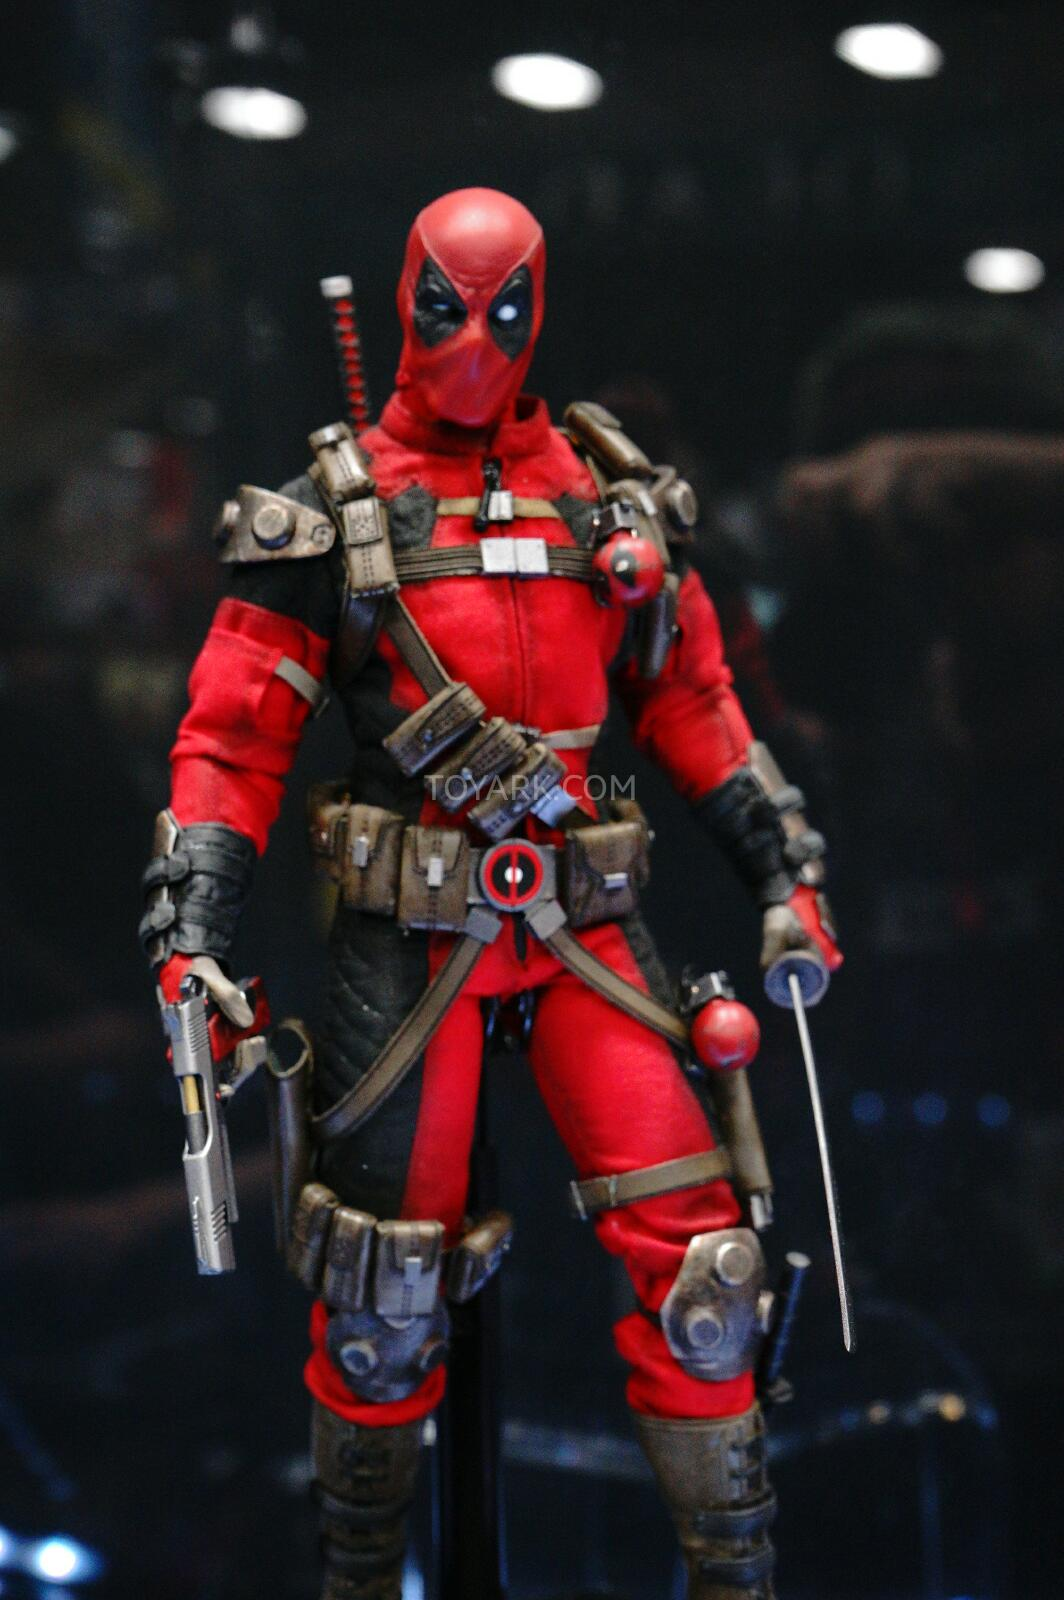 [Sideshow] Marvel Sixth Scale Collection - Deadpool DSC07544